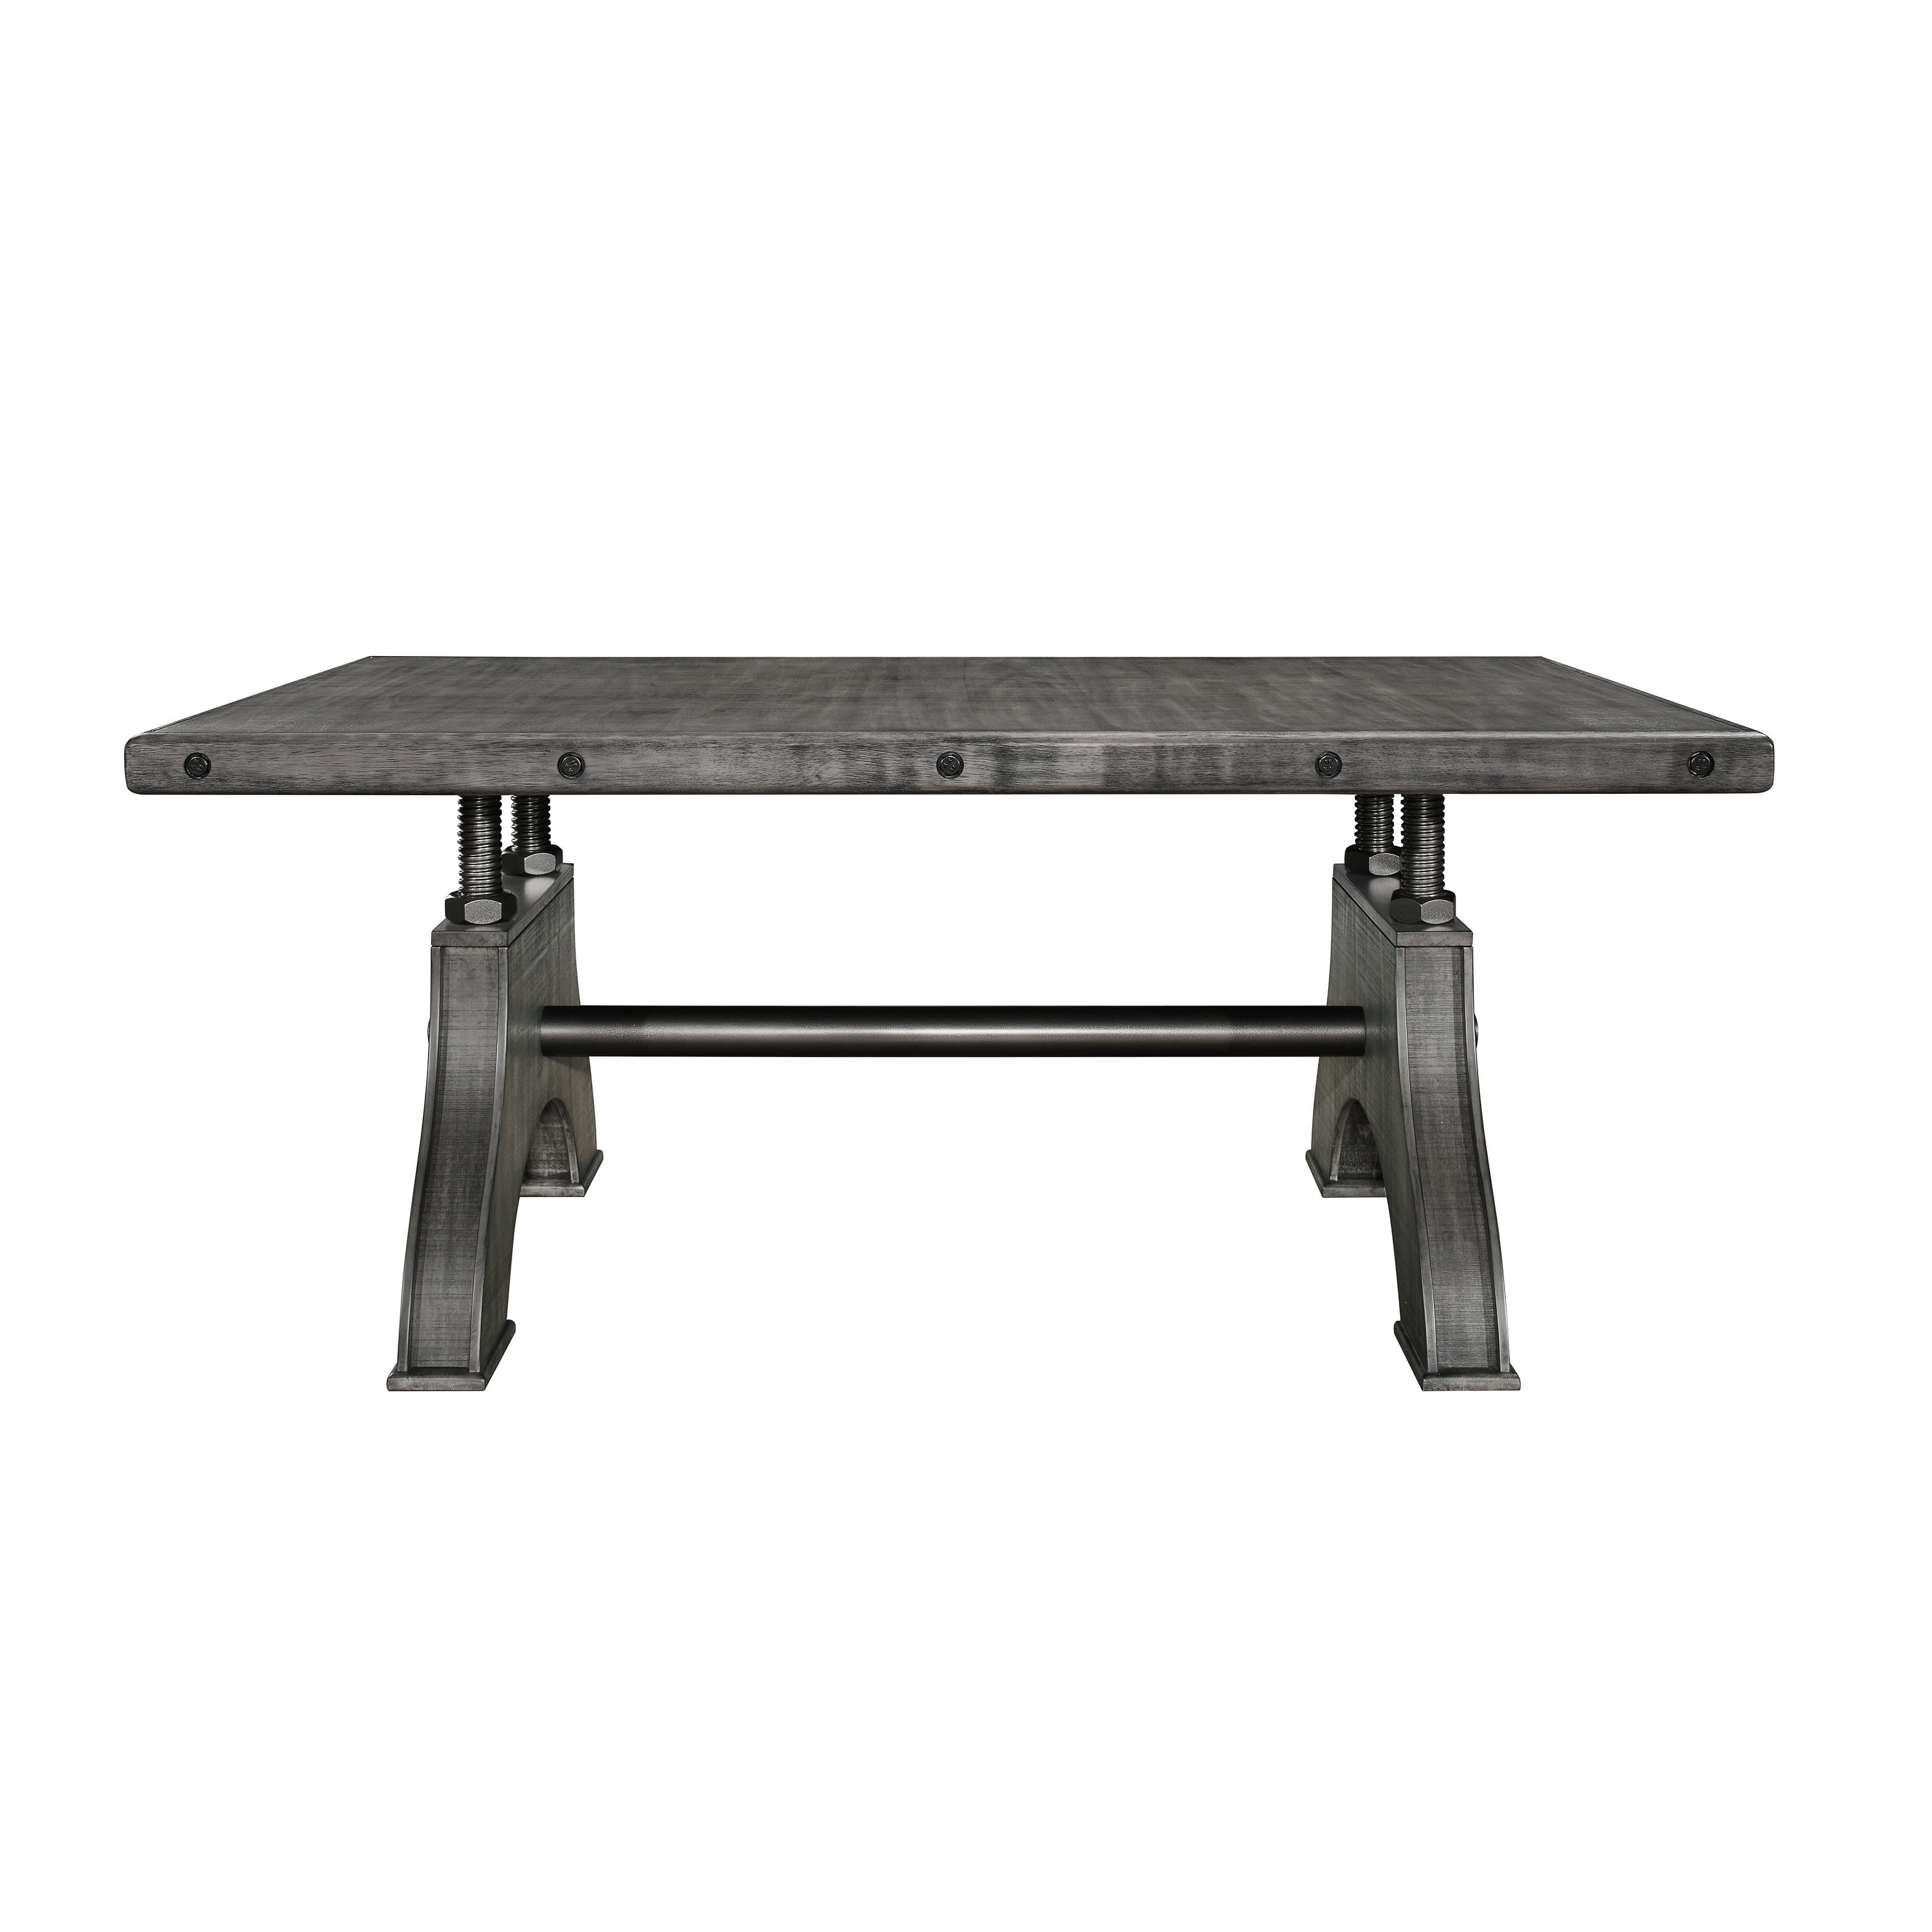 Swell Global Furniture Grey Washed Wood Work Bench Style Dining Table Pdpeps Interior Chair Design Pdpepsorg